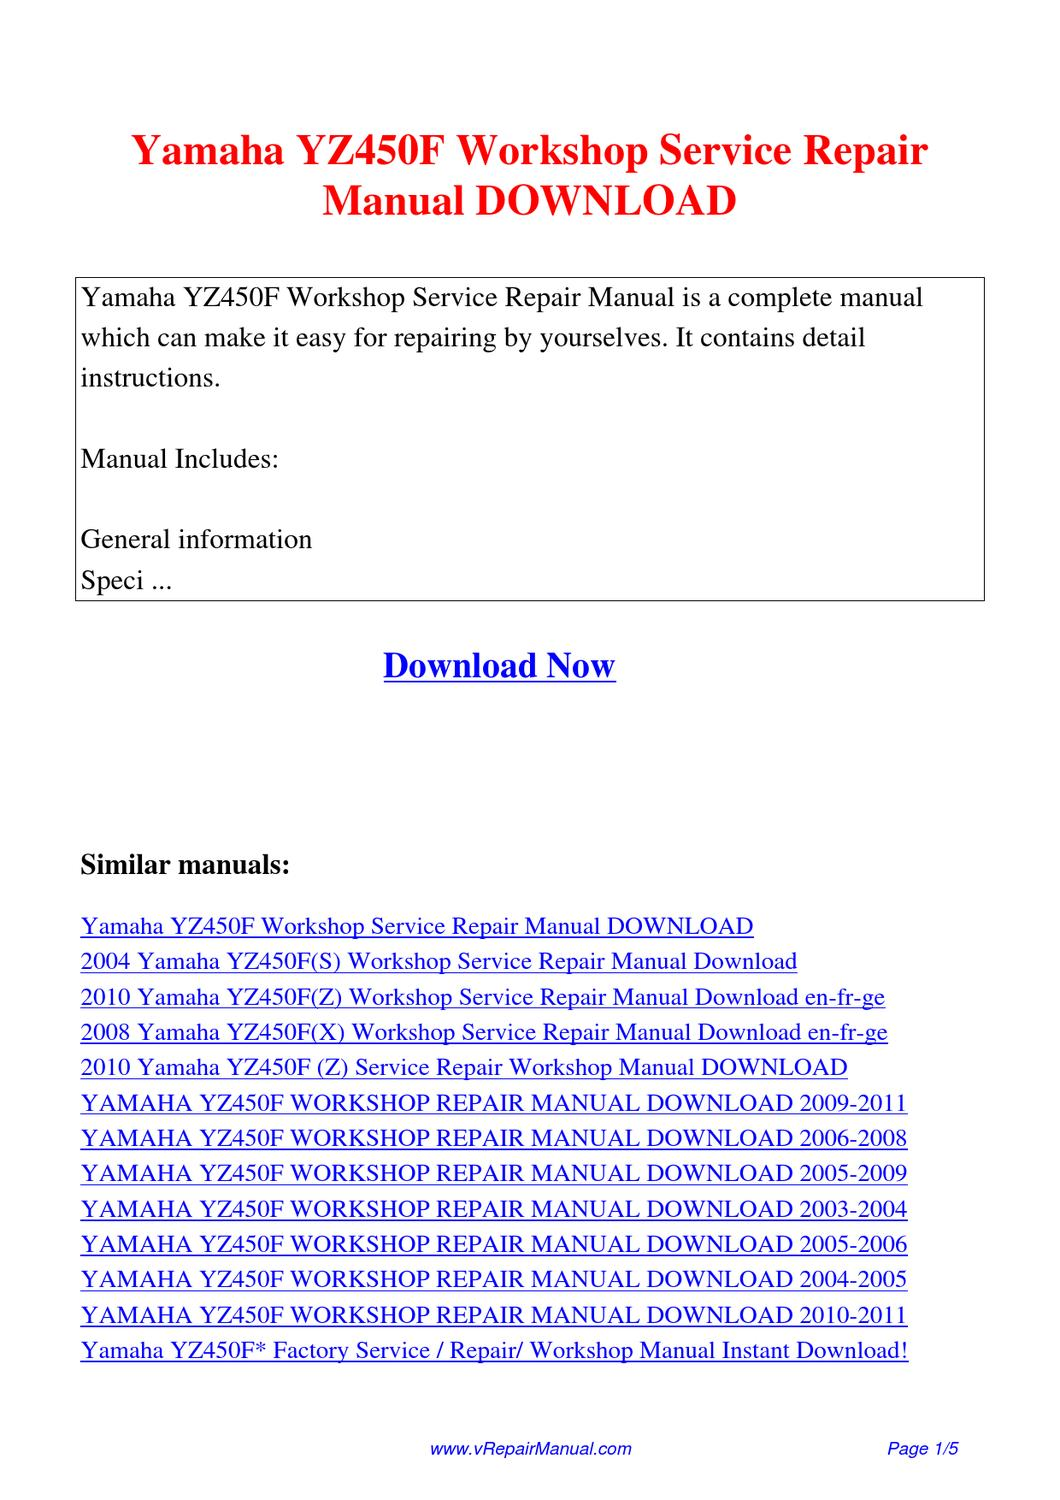 Yamaha yz450f(w) owner's service manual pdf download.